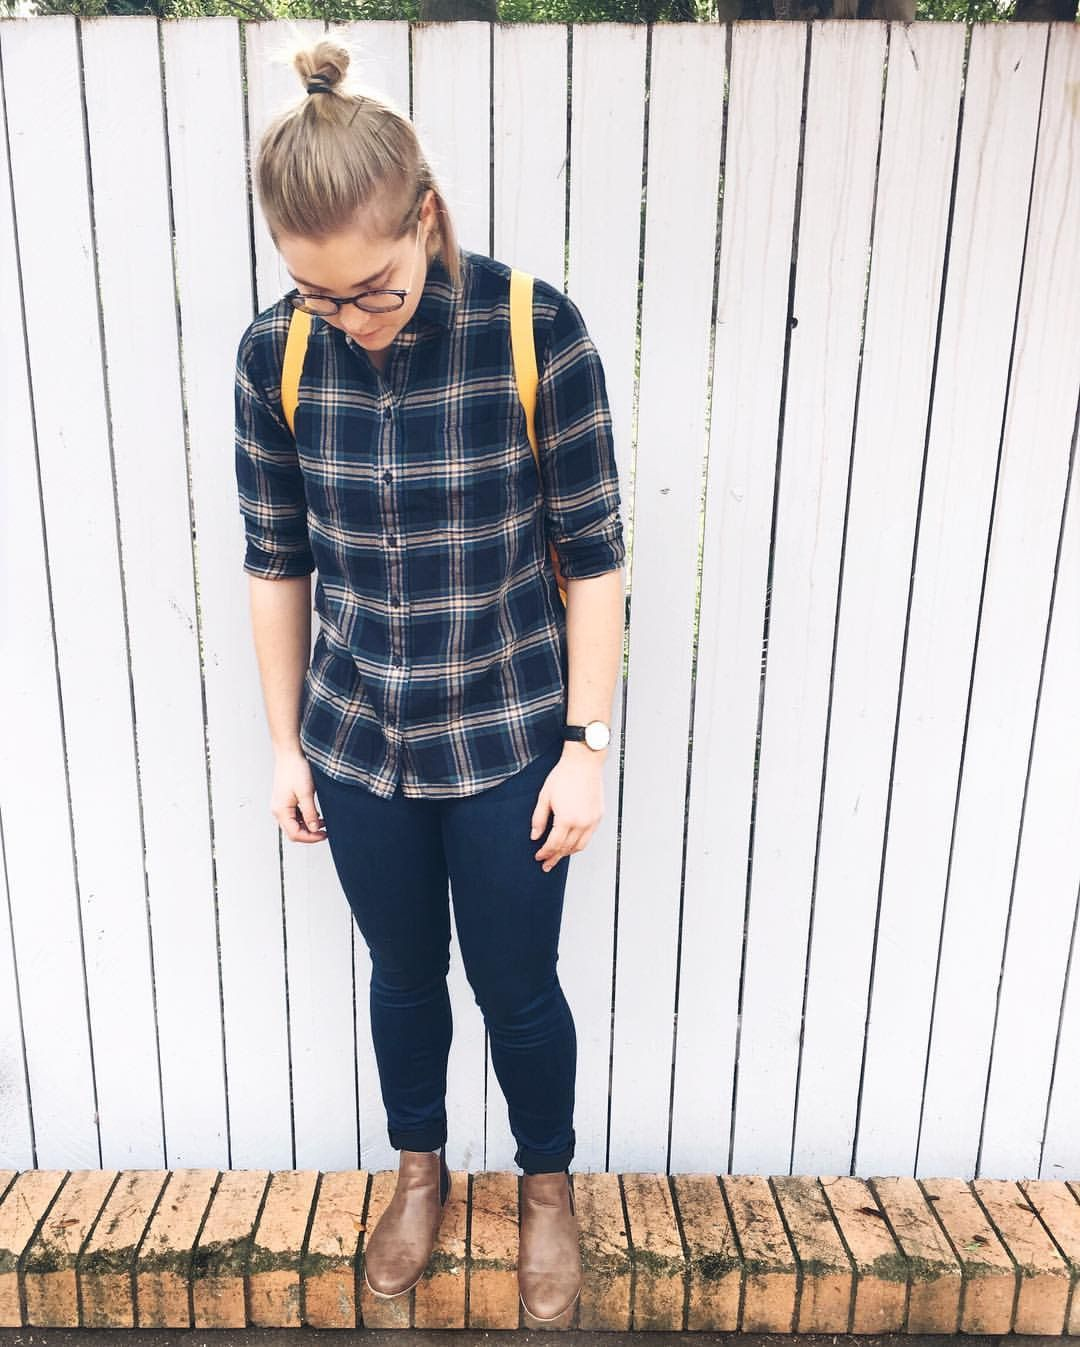 Flannel with jeans and boots  Uniqlo flannel  Riders by Lee jeans  Novo boots  Me  FASHION